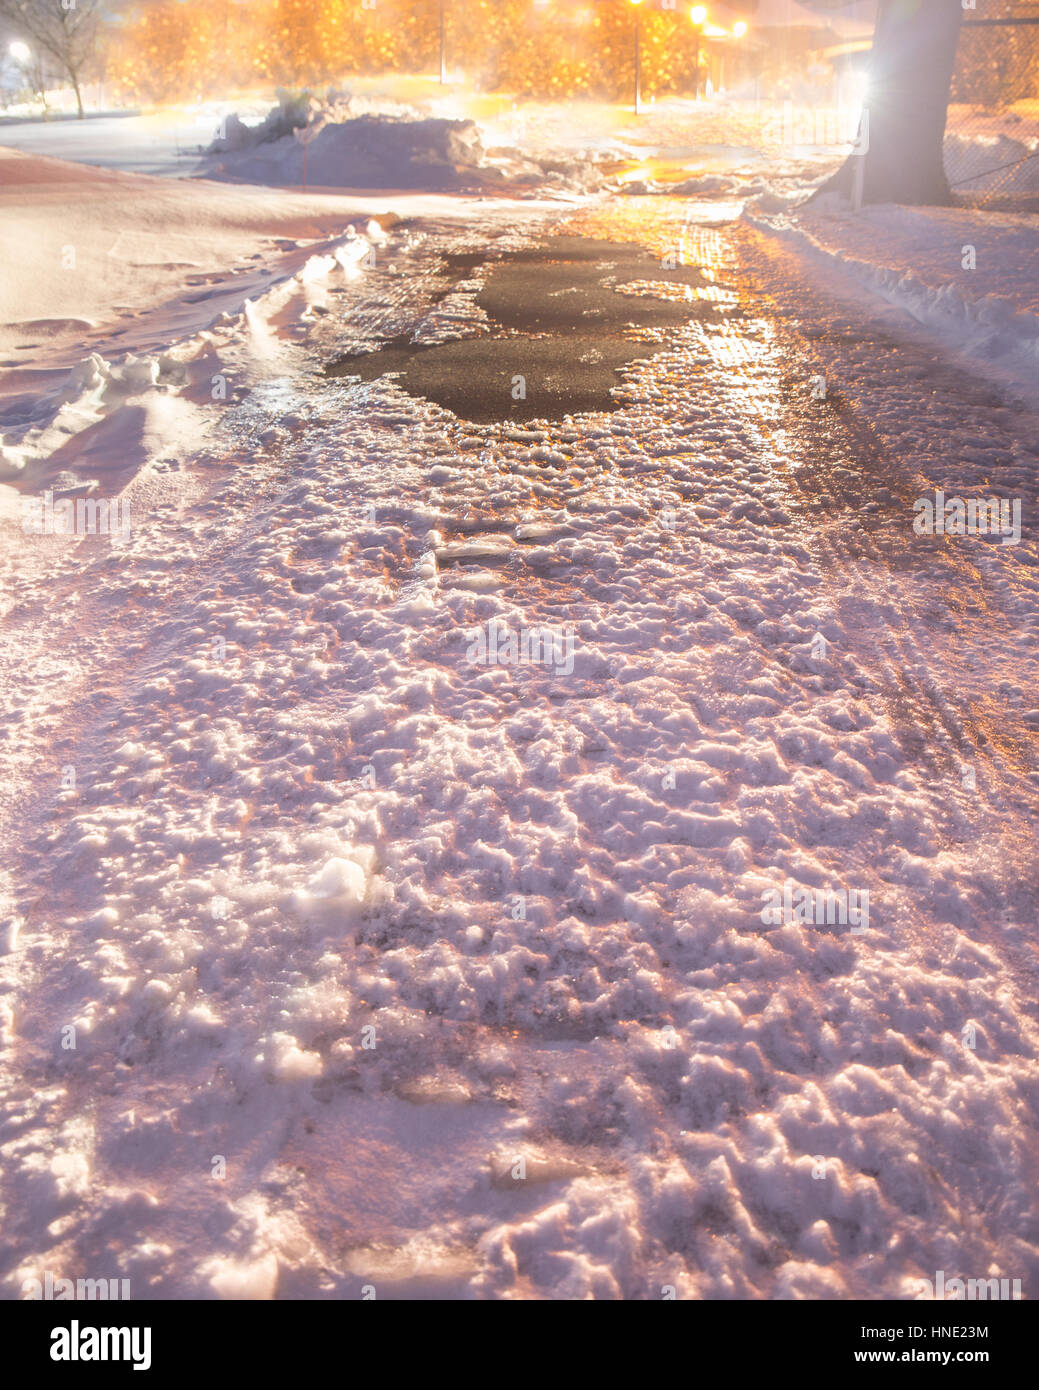 Frozen winter road covered in ice and snow - Stock Image